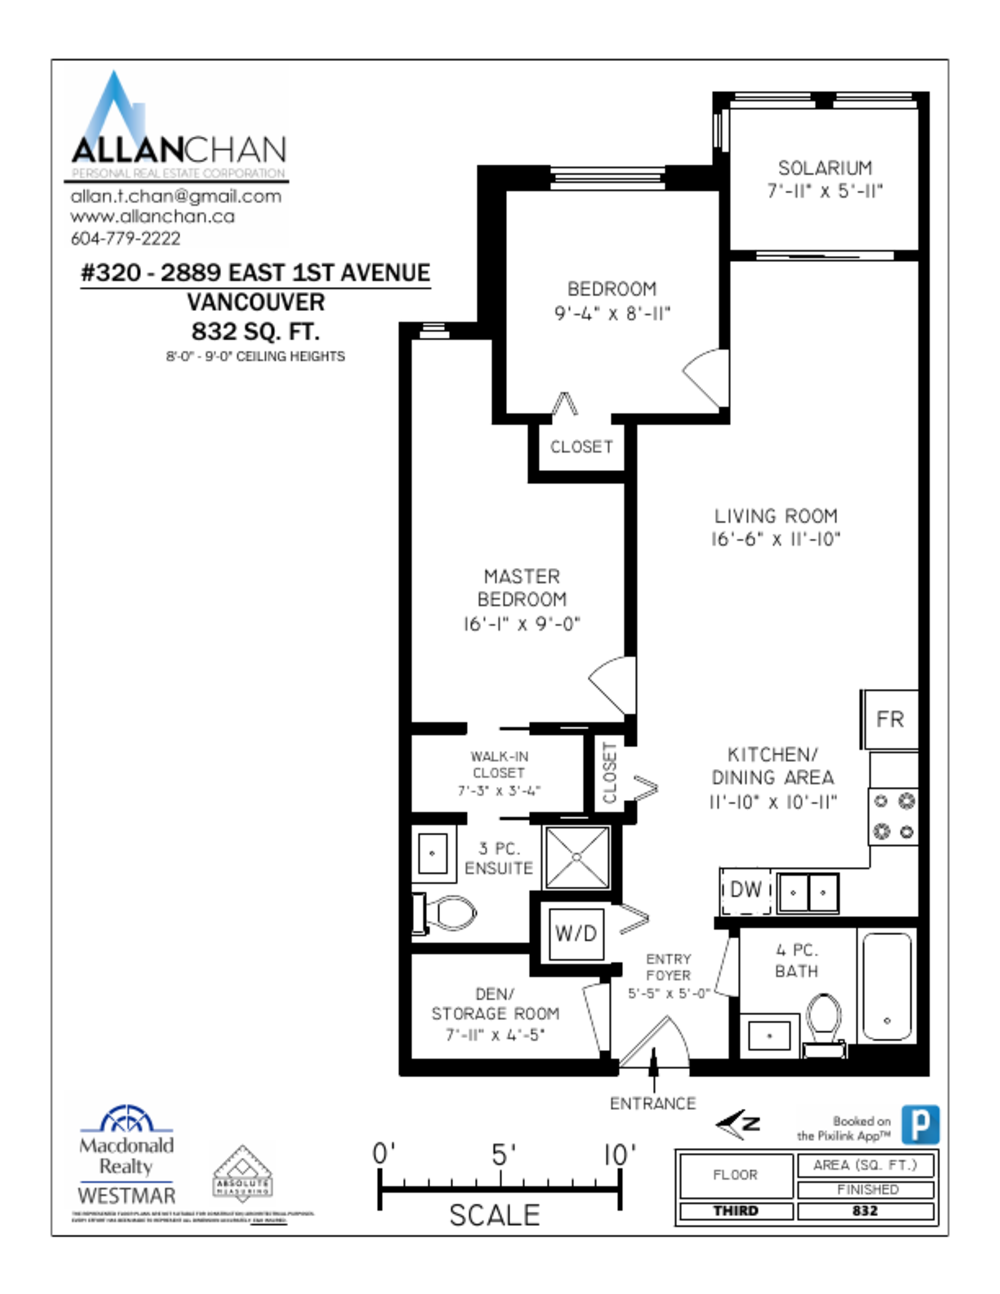 Floor Plan for a 3 Bedroom Apartment in Vancouver